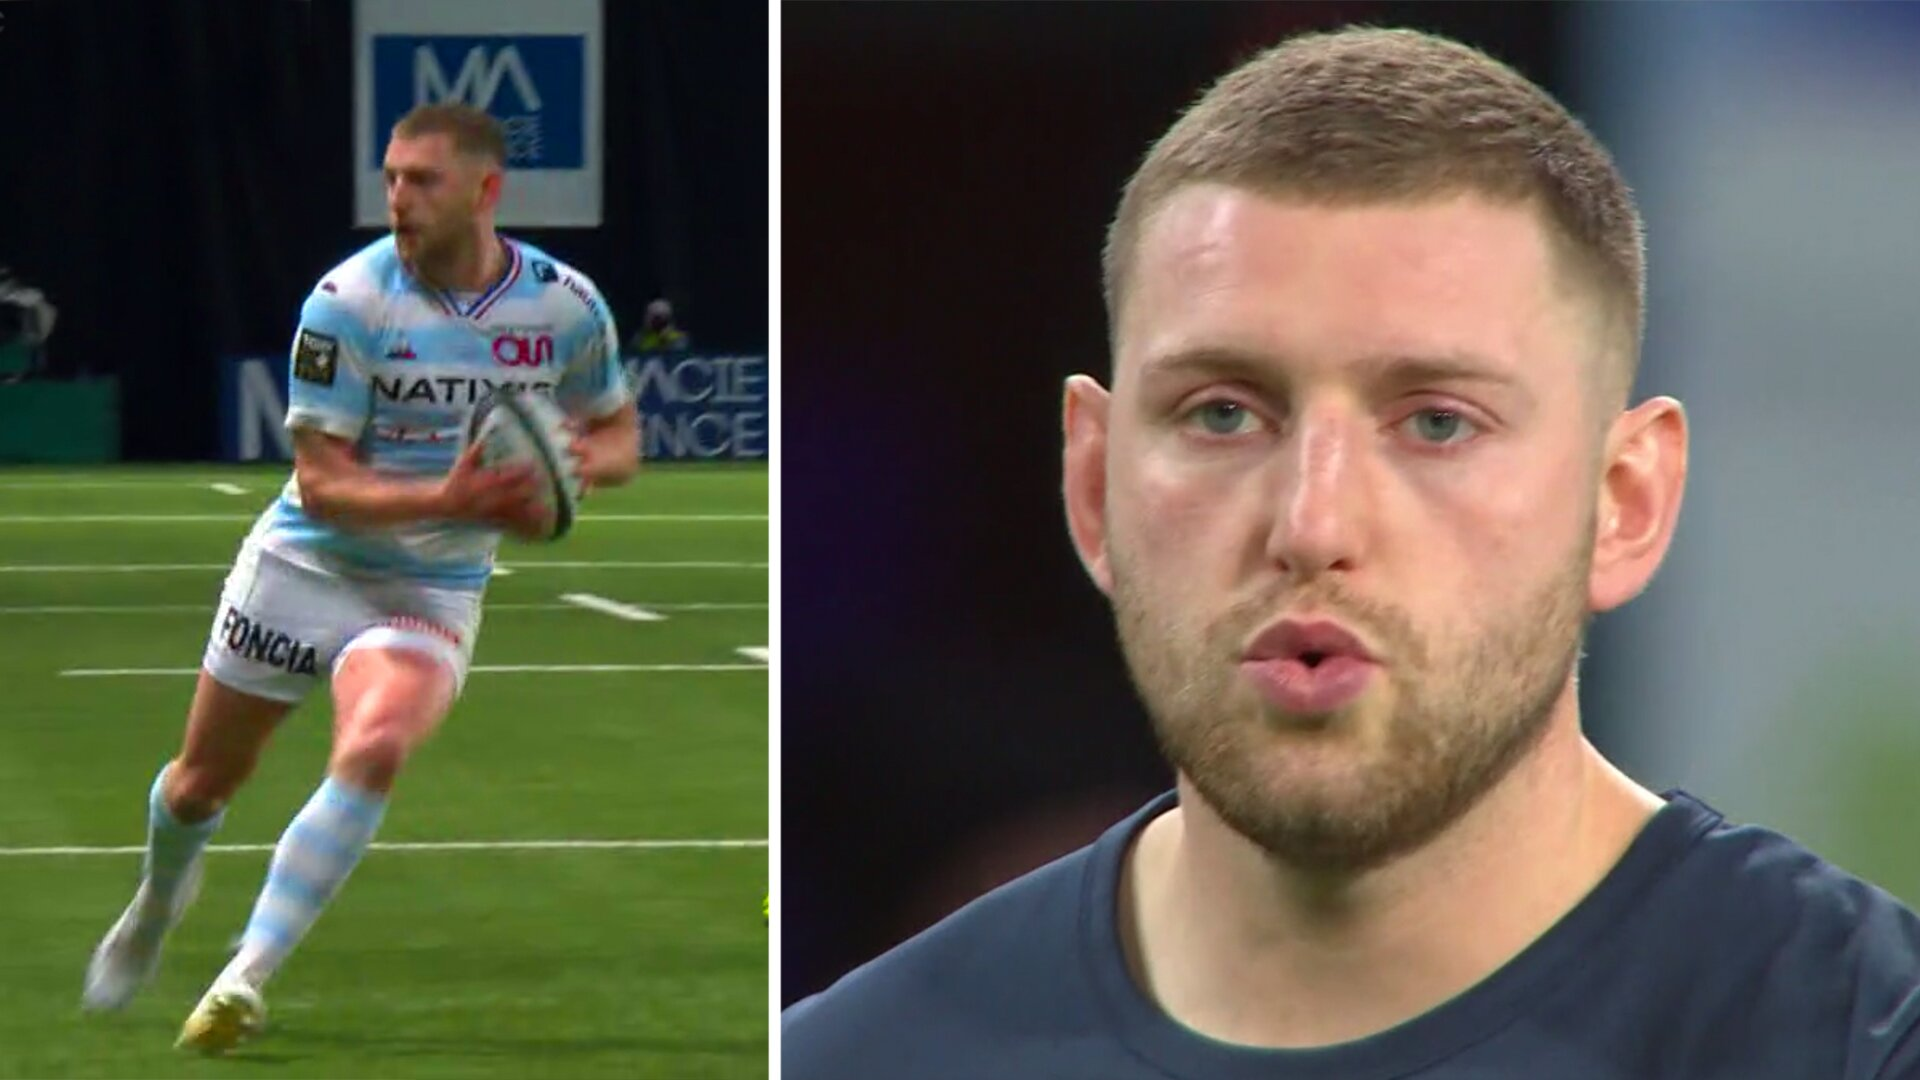 Finn Russell creates another hall of fame highlight moment in bid for Lions 2021 spot